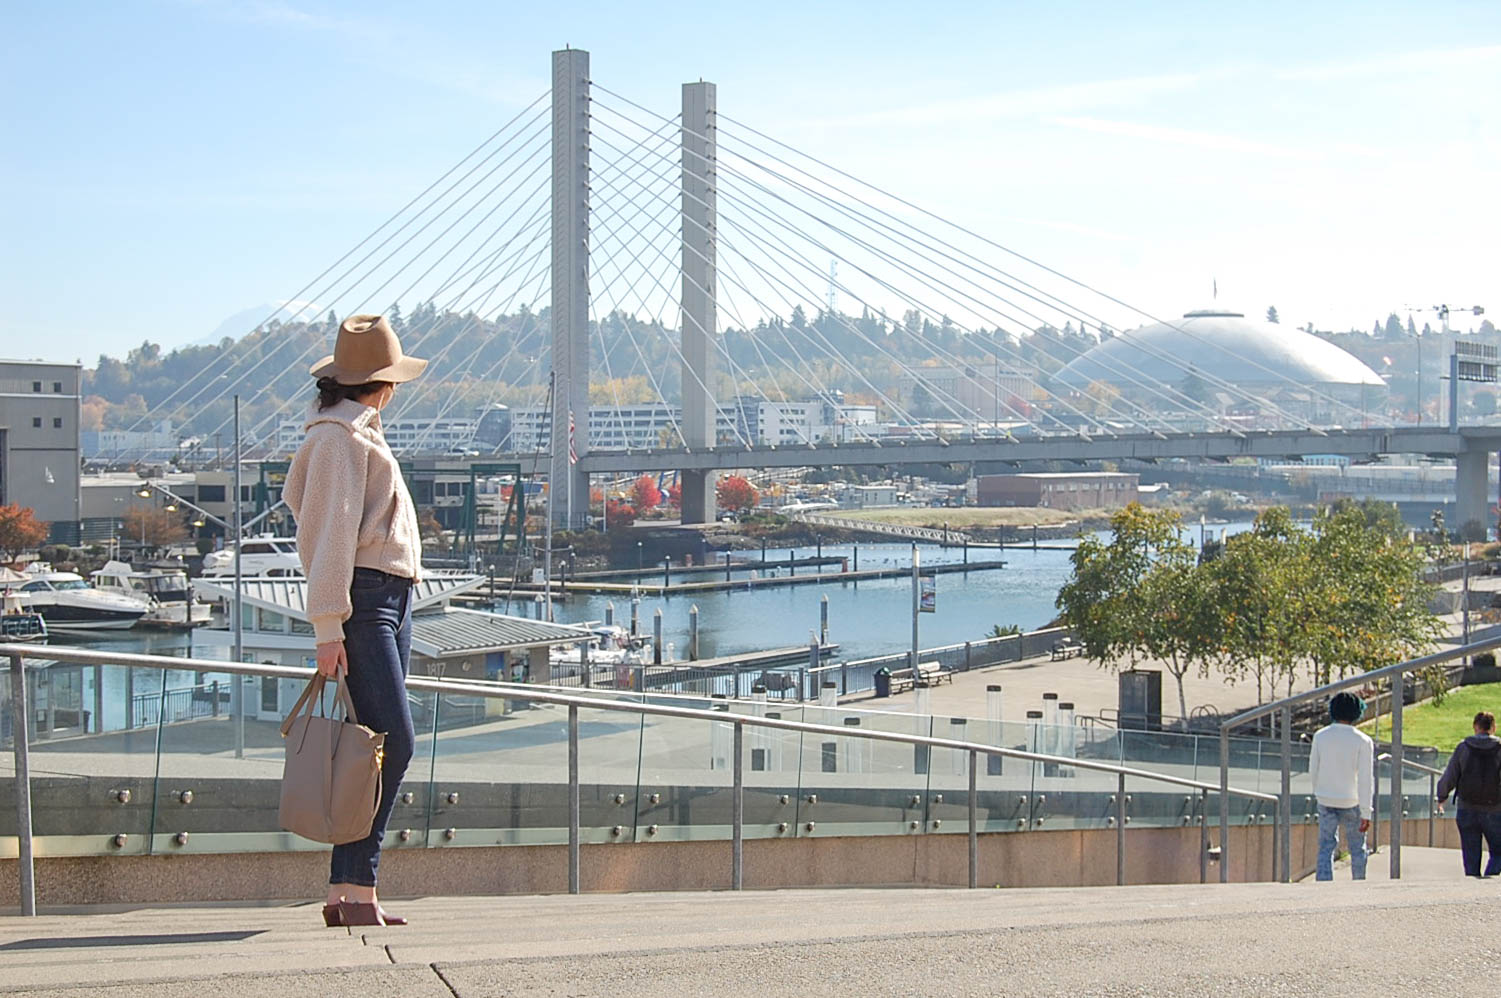 Tacoma, Washington is the Perfect Spot for an Urban Getaway